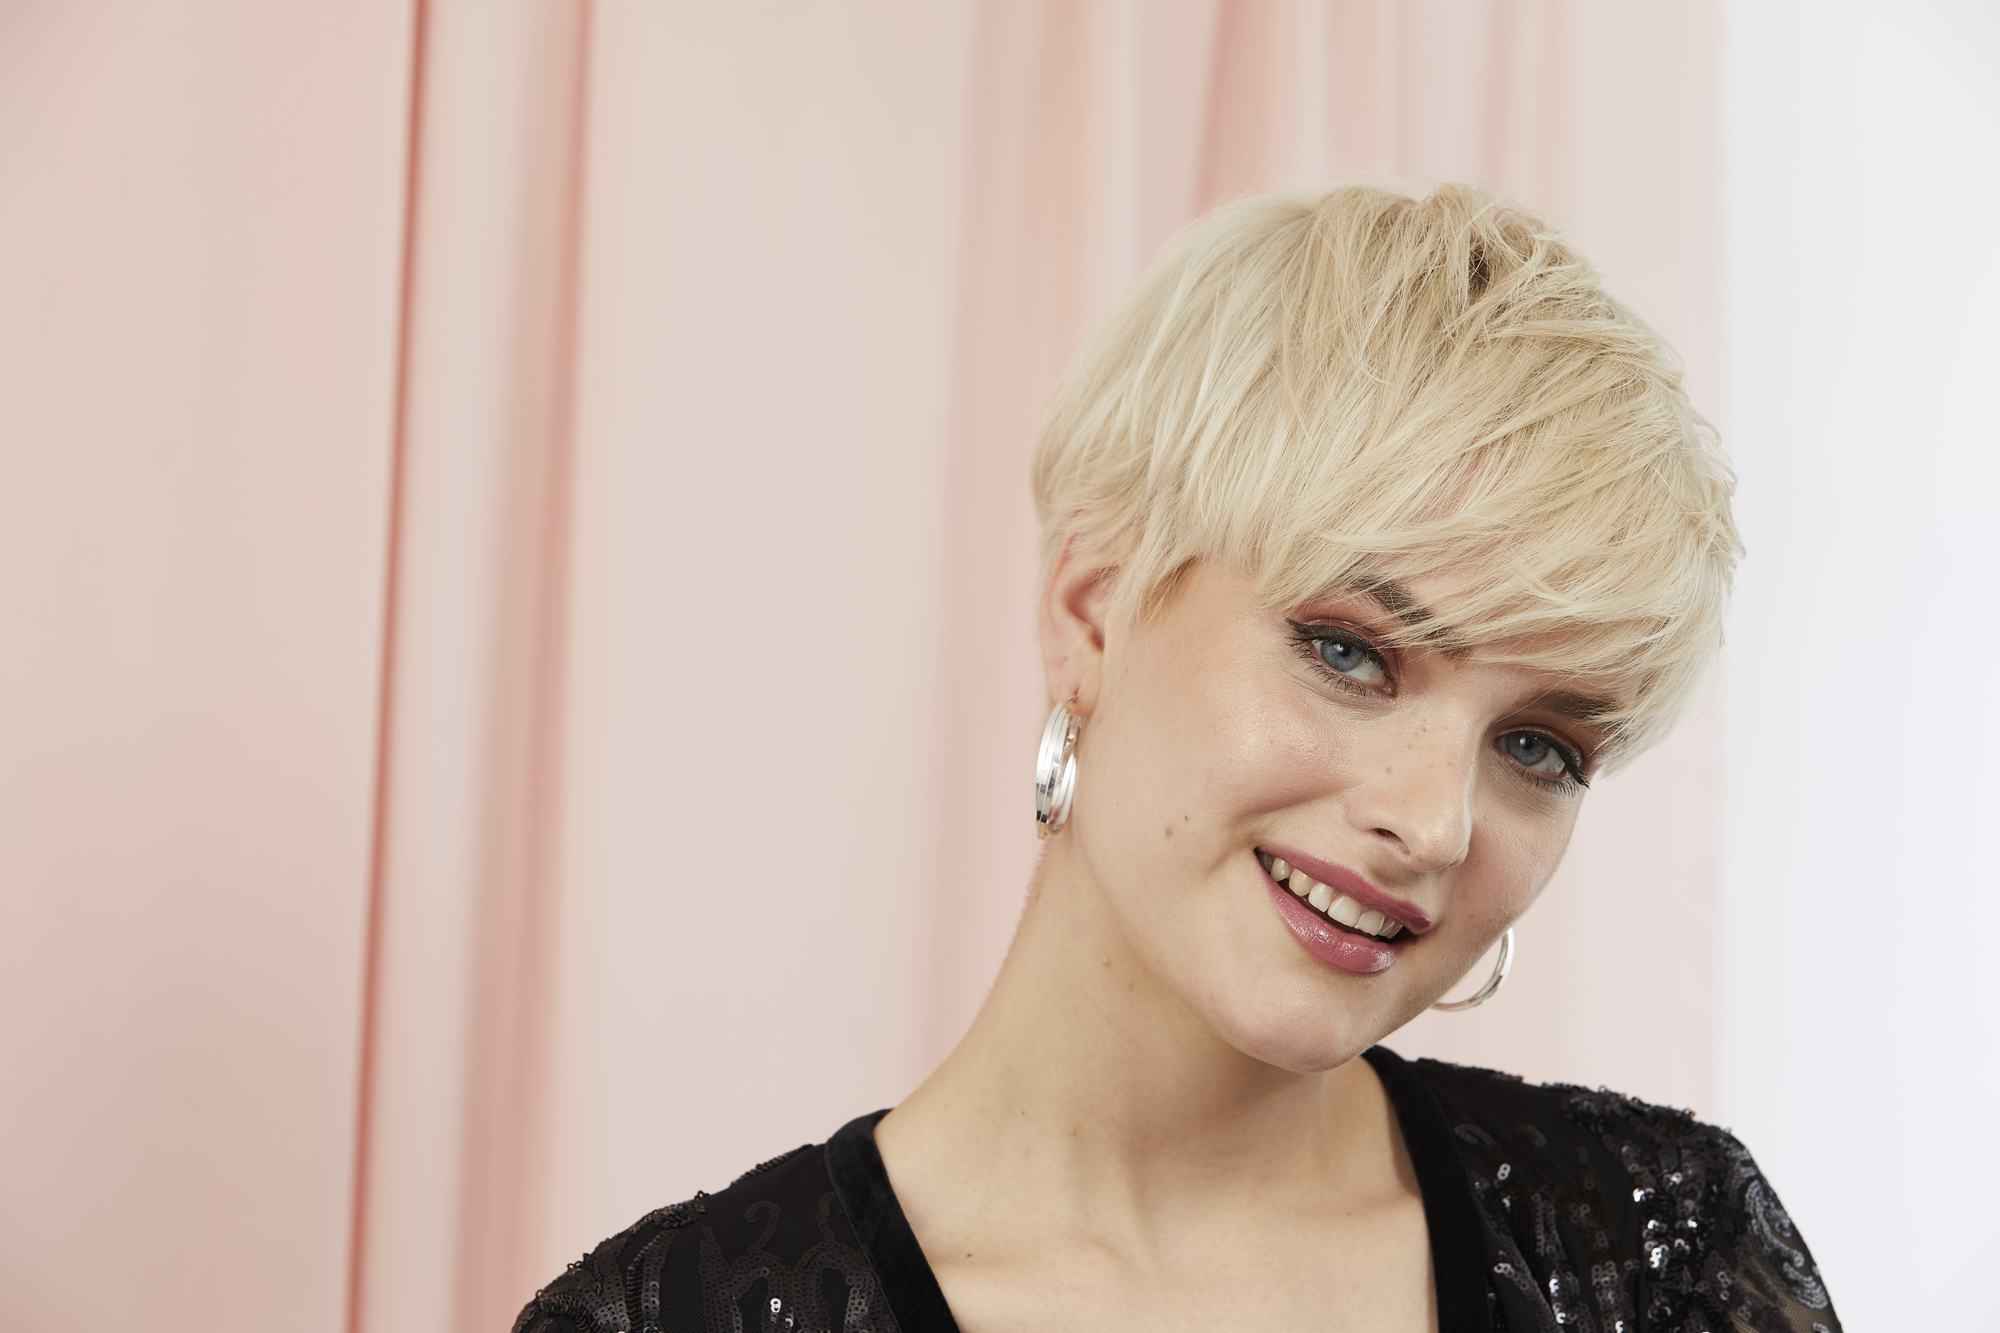 35 Best Pixie Cut Hairstyles For 2019 You Will Want To See In Sophisticated Wavy Ash Blonde Pixie Bob Hairstyles (Gallery 10 of 20)